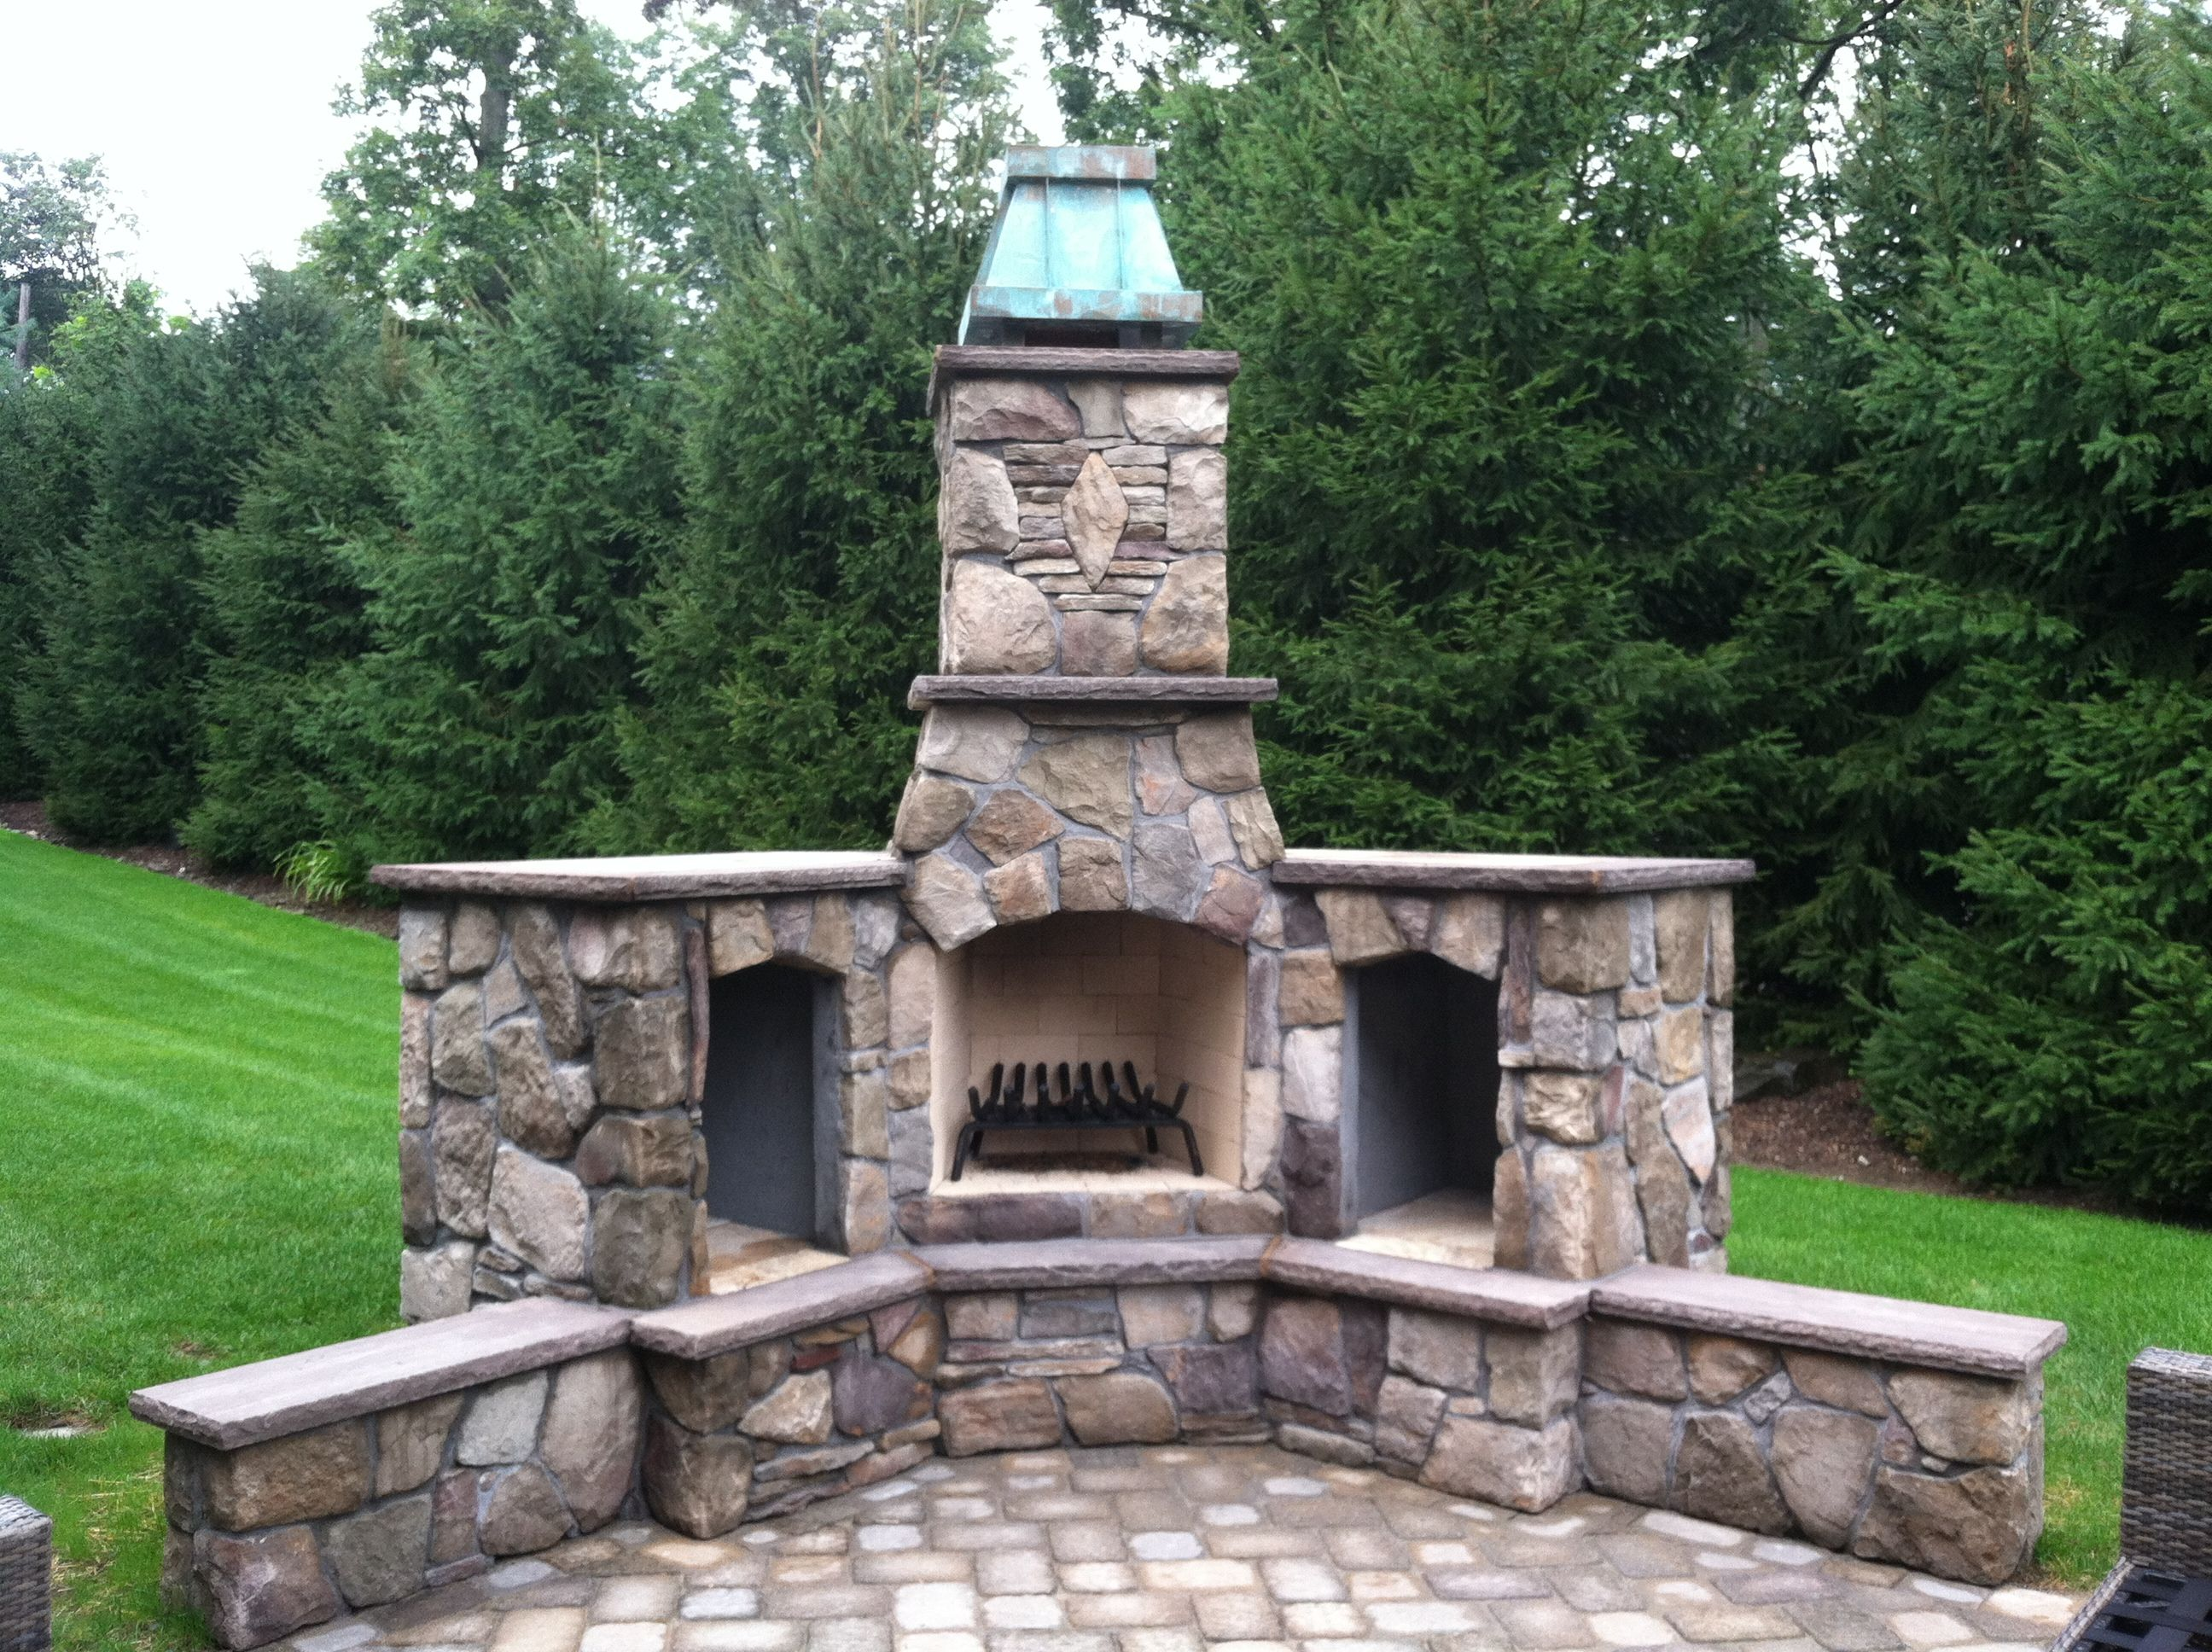 minneapolis fireplaces new chimney ideas fireplace backyard outdoor beautiful plans box